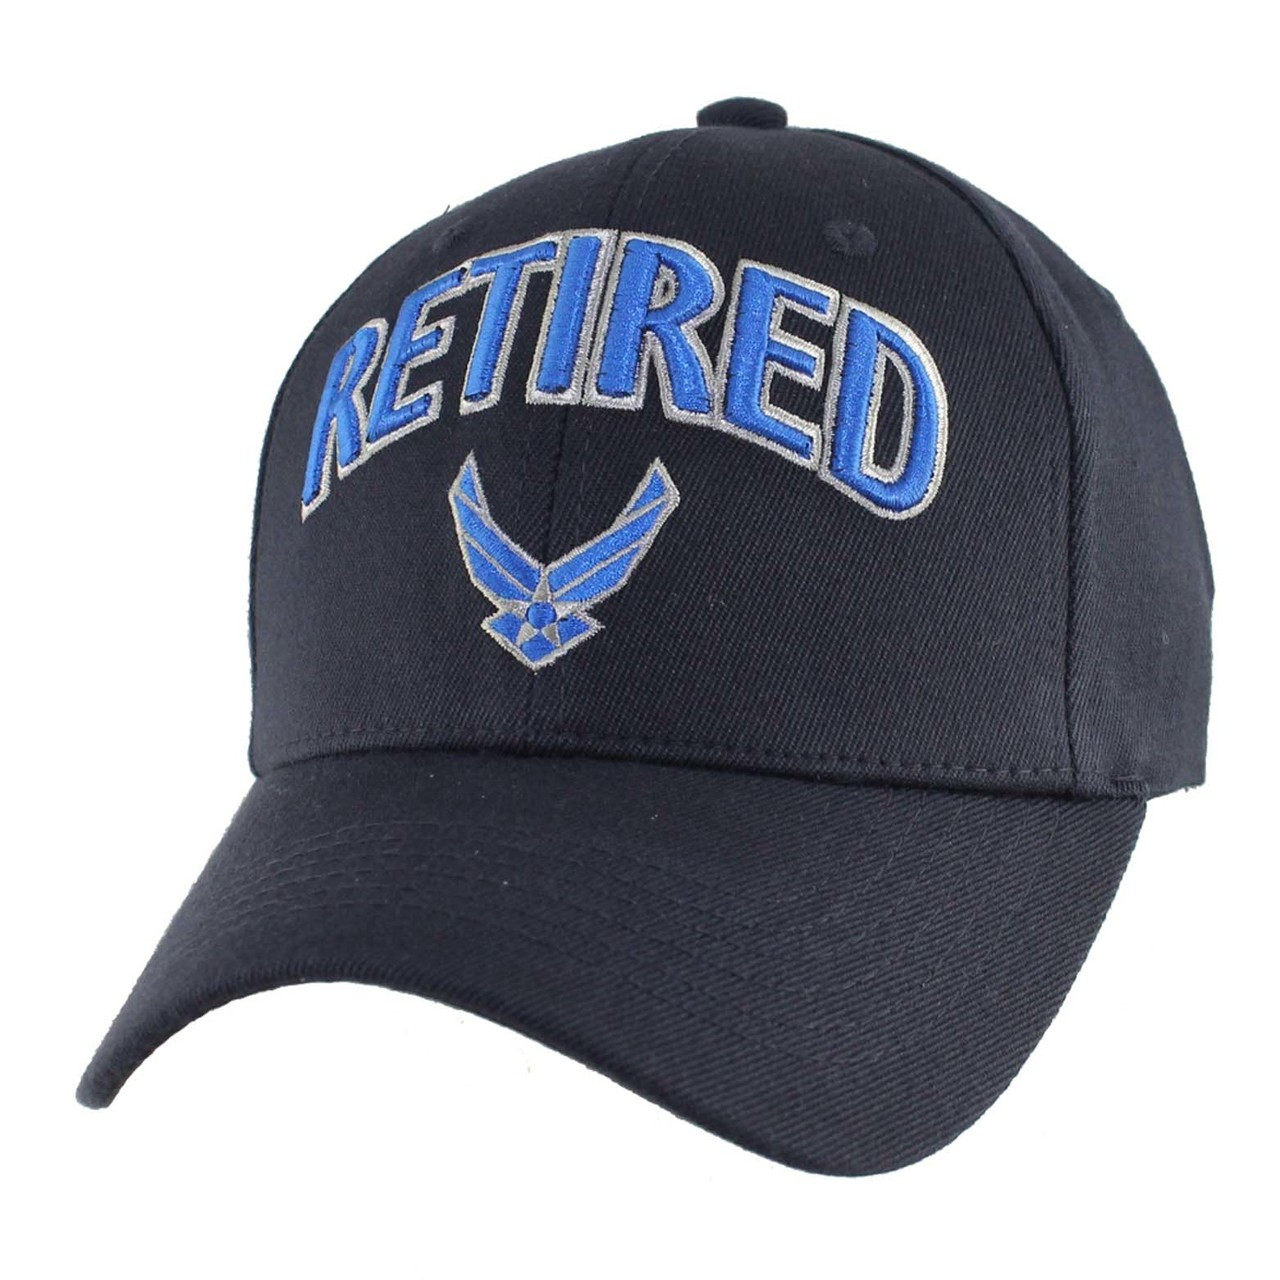 b30fd27144e U.S.A.F. US AIR FORCE RETIRED OFFICIALLY LICENSED Military Hat Baseball cap